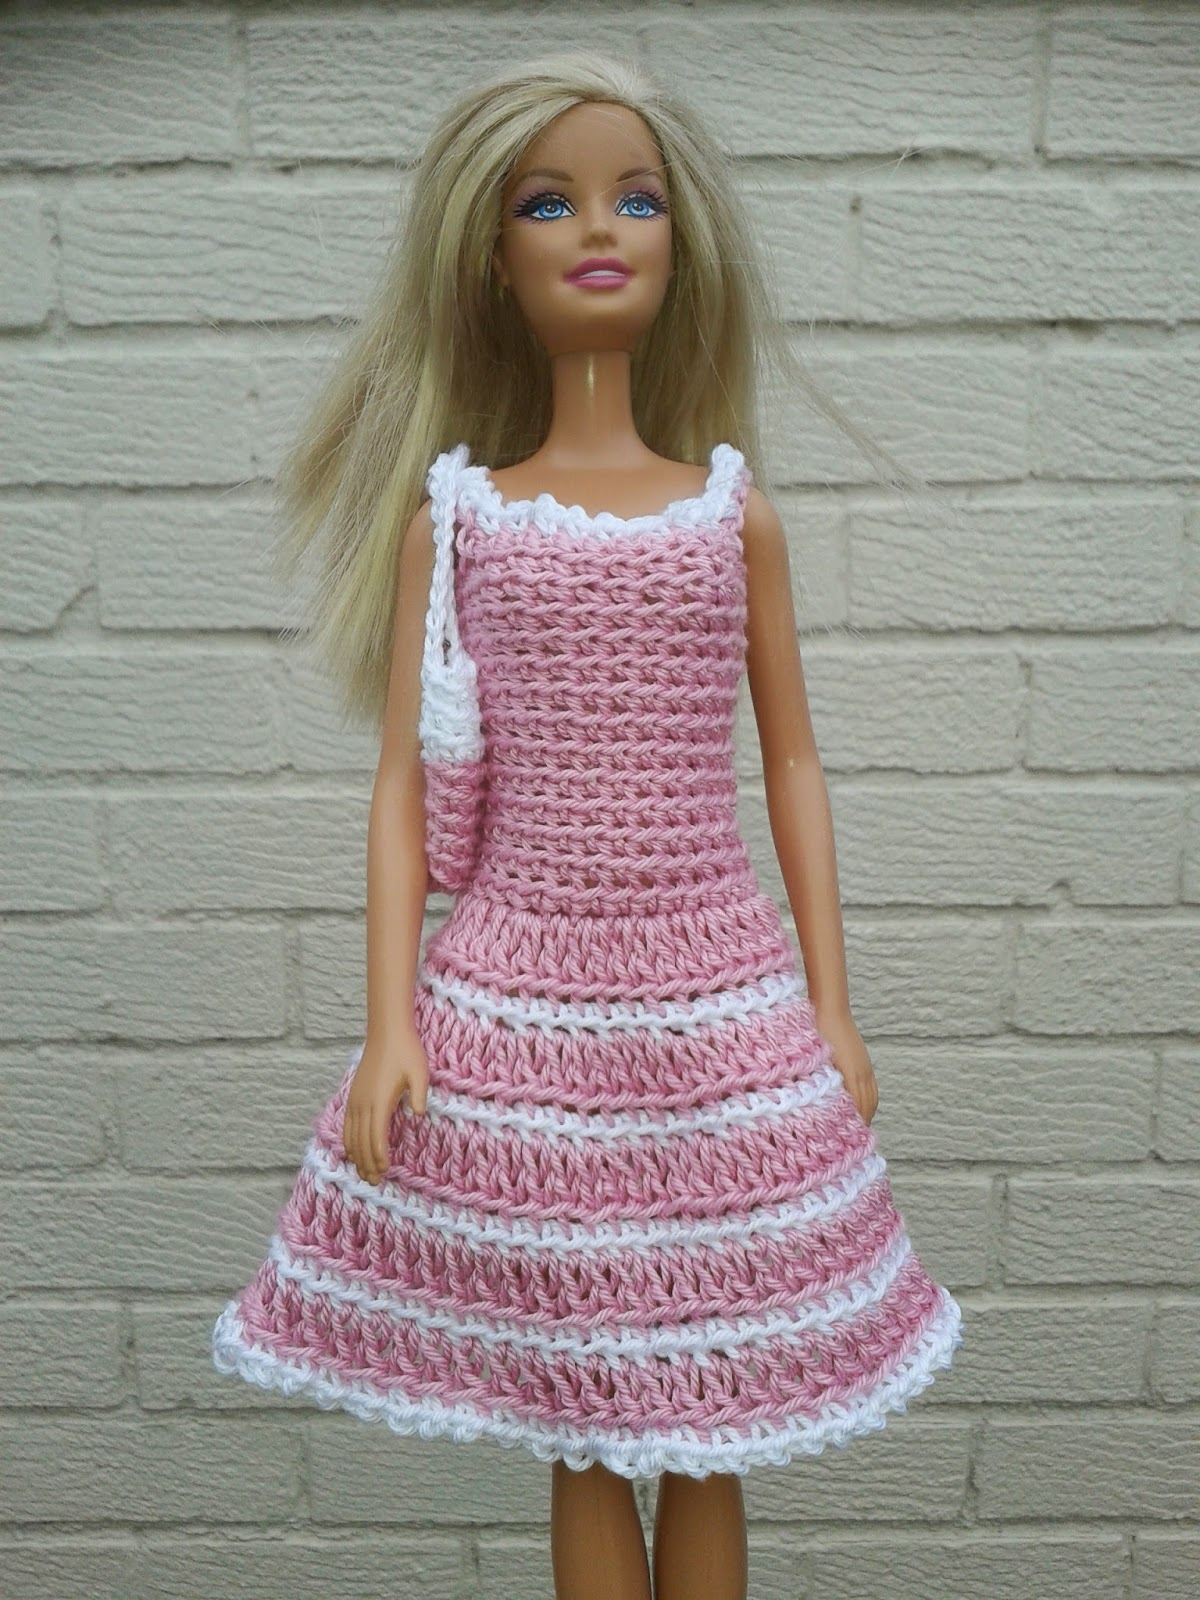 Crochet Patterns Doll Clothes : Lyns Dolls Clothes: Barbie Crochet Dress